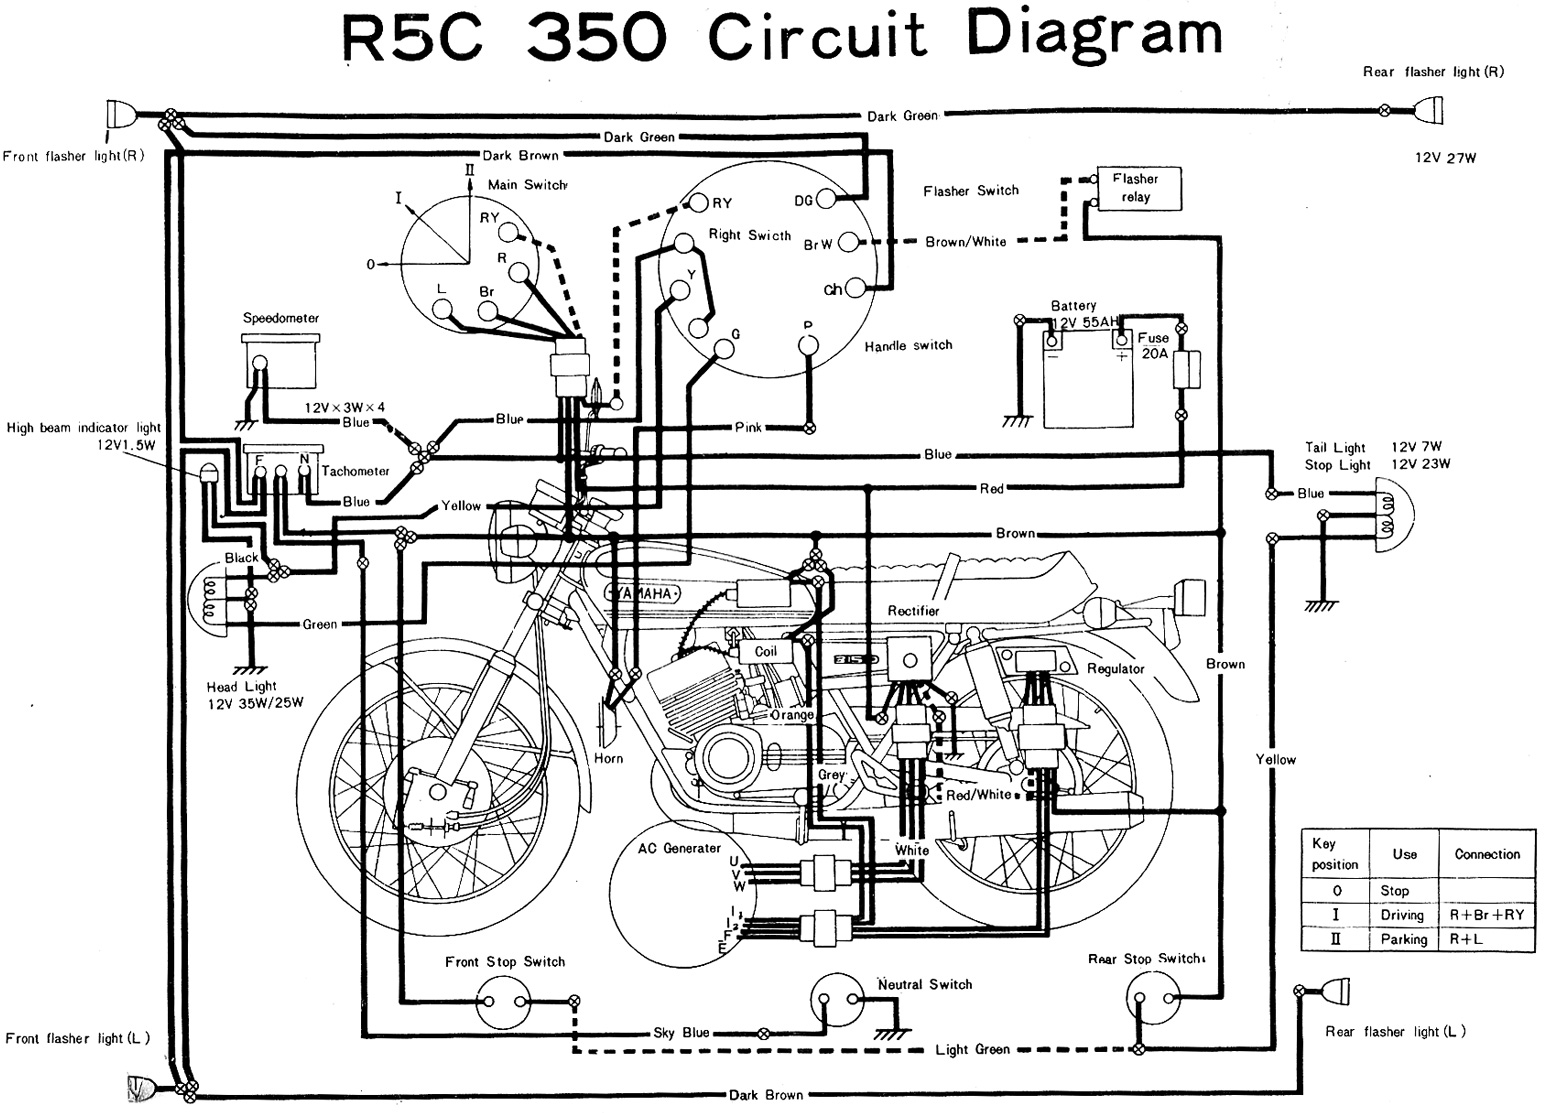 Yamaha R5C 350 Electrical Wiring Diagram1 motorcycle wiring diagrams motorcycle wiring schematics at readyjetset.co